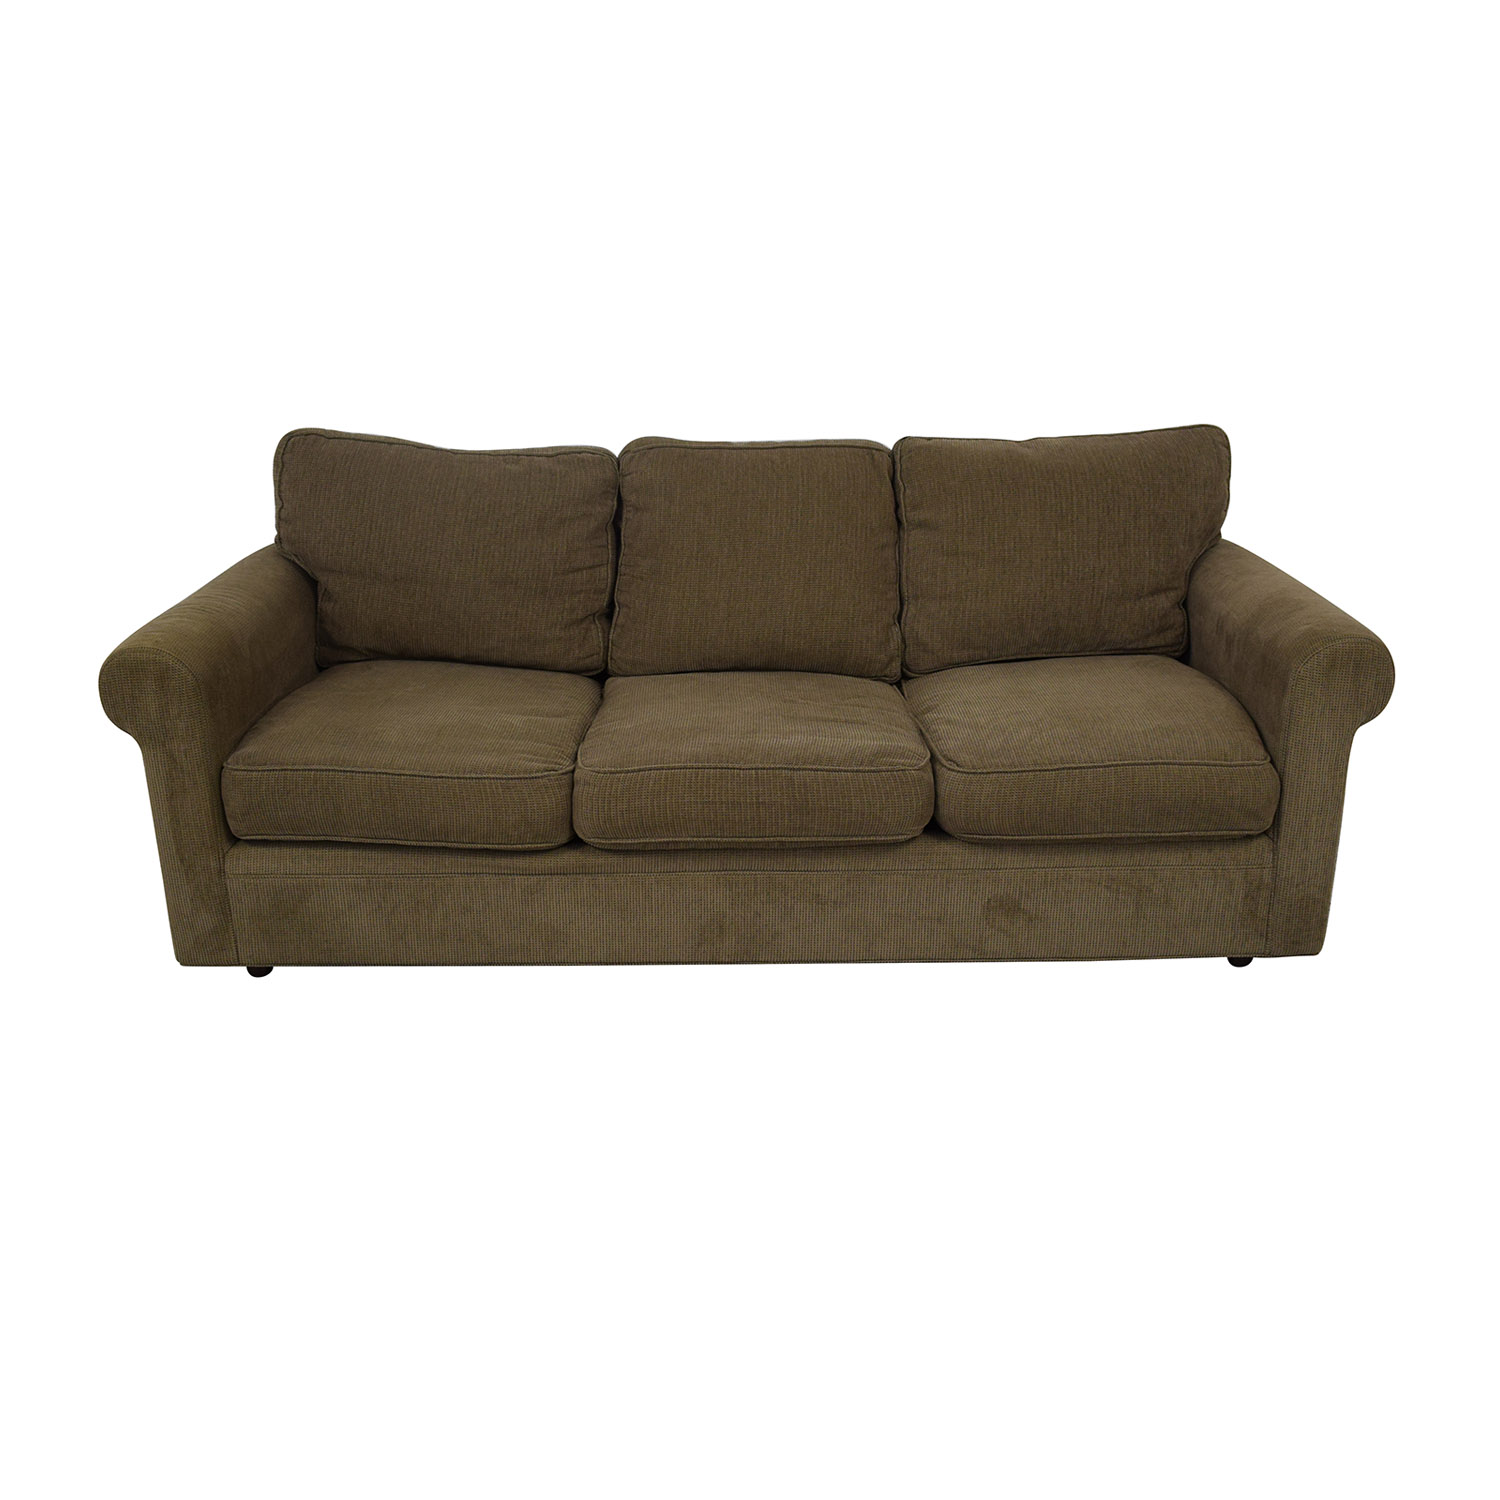 Crate & Barrel Crate & Barrel 3-Seat Rolled Arm Sofa on sale